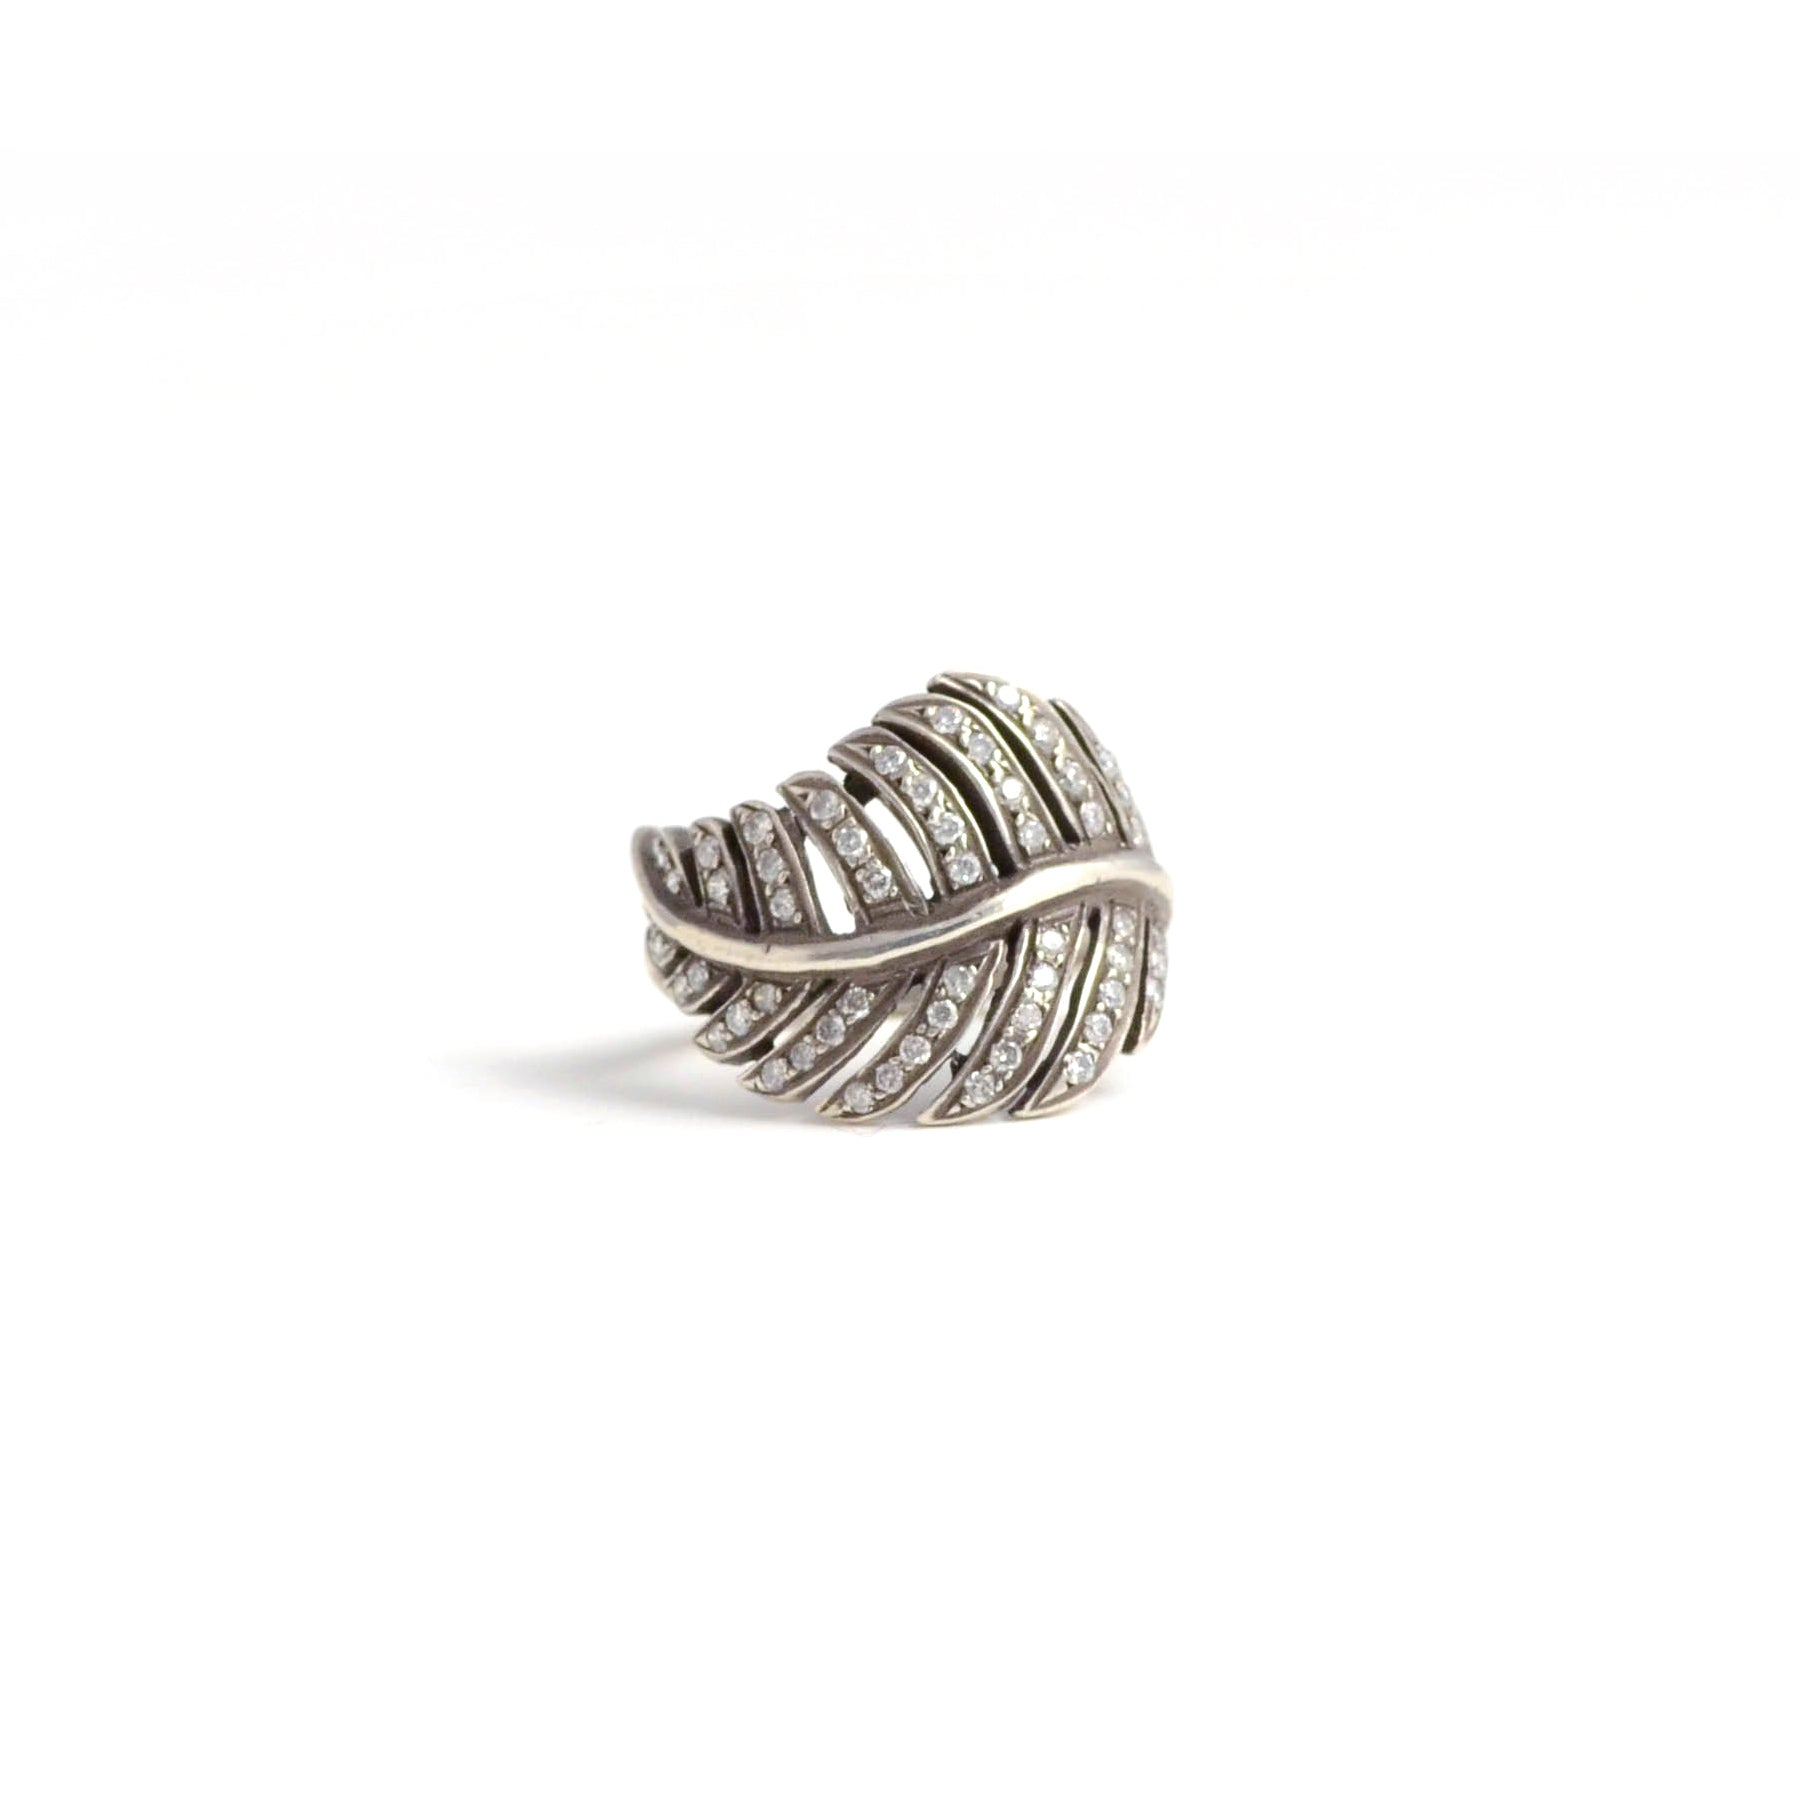 rit Design ring. A little bit vintage...a little bit edgy. Silver and diamonds give a gorgeous glow to this leaf shaped ring.